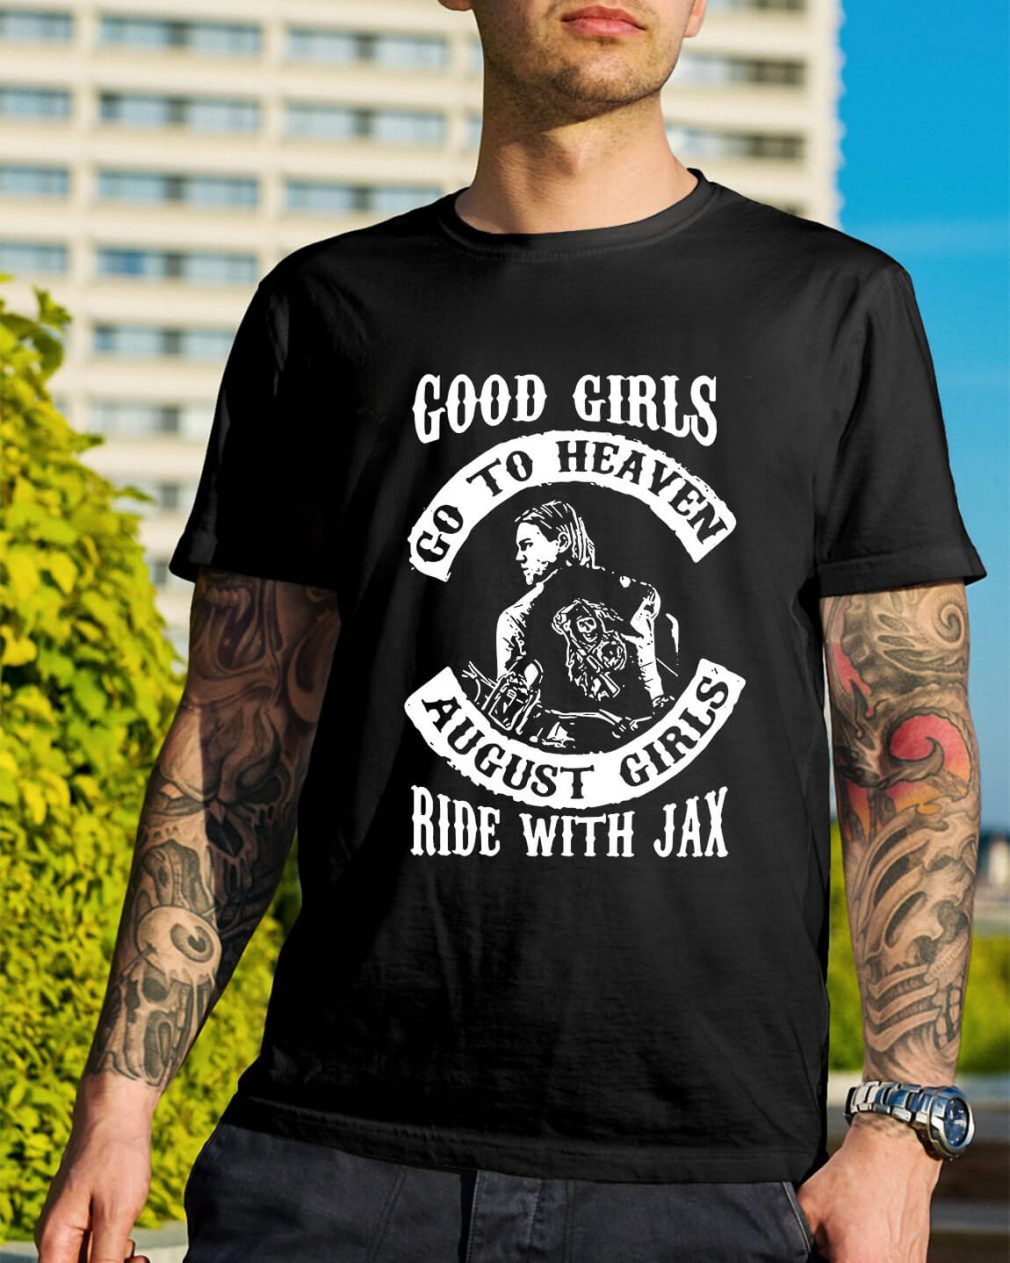 Good girl go to heaven August girls ride with Jax shirt